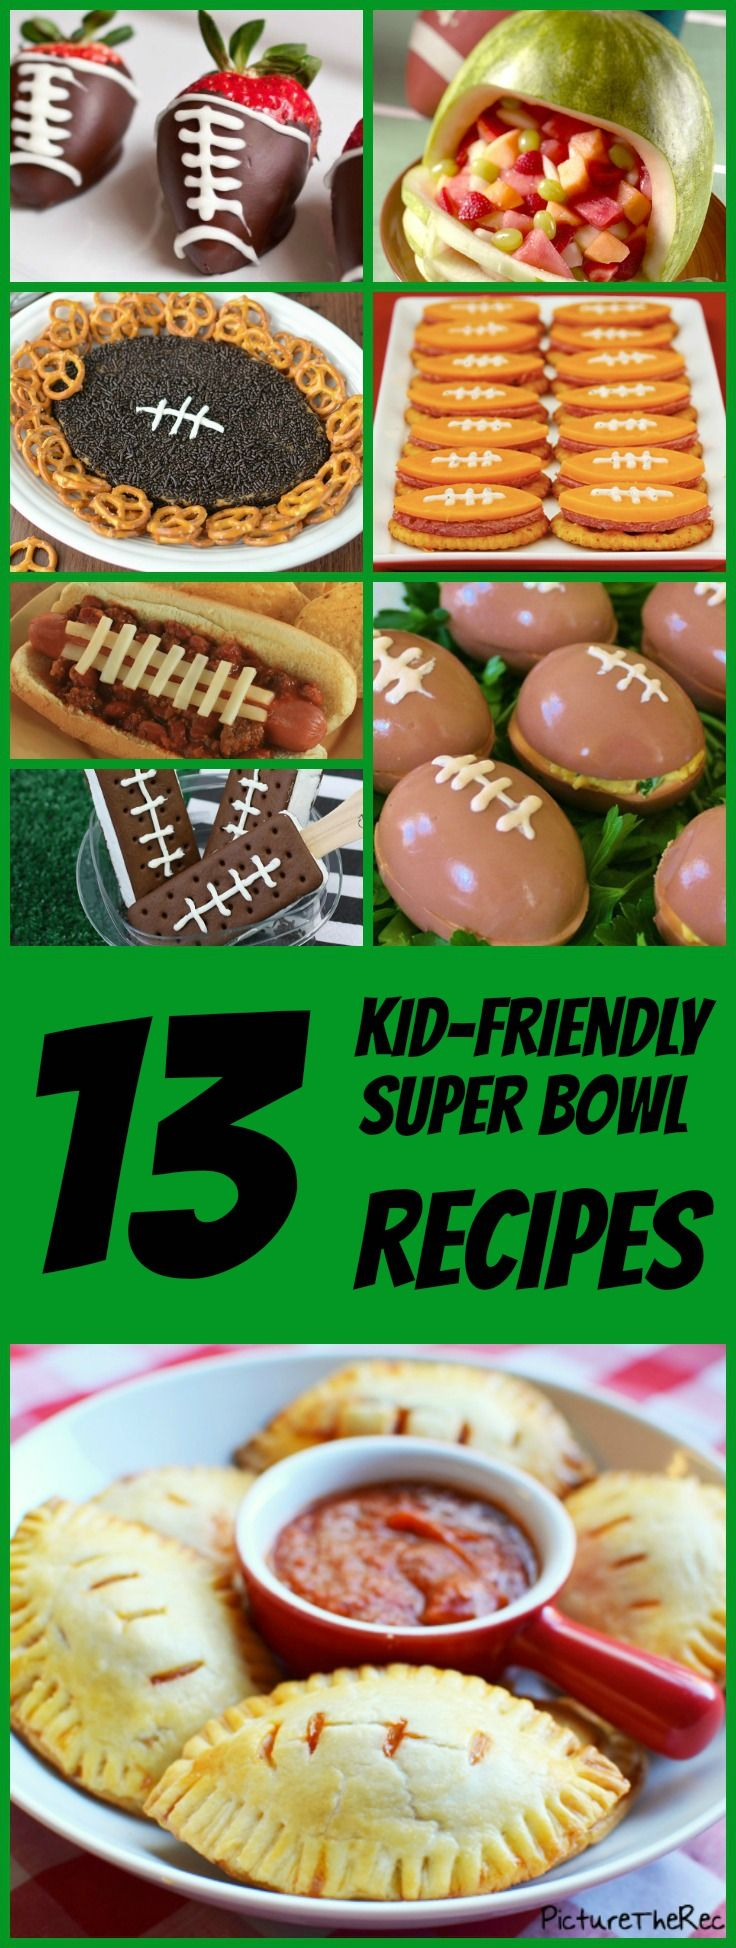 13 irresistible, kid-friendly Super Bowl recipes. #superbowl